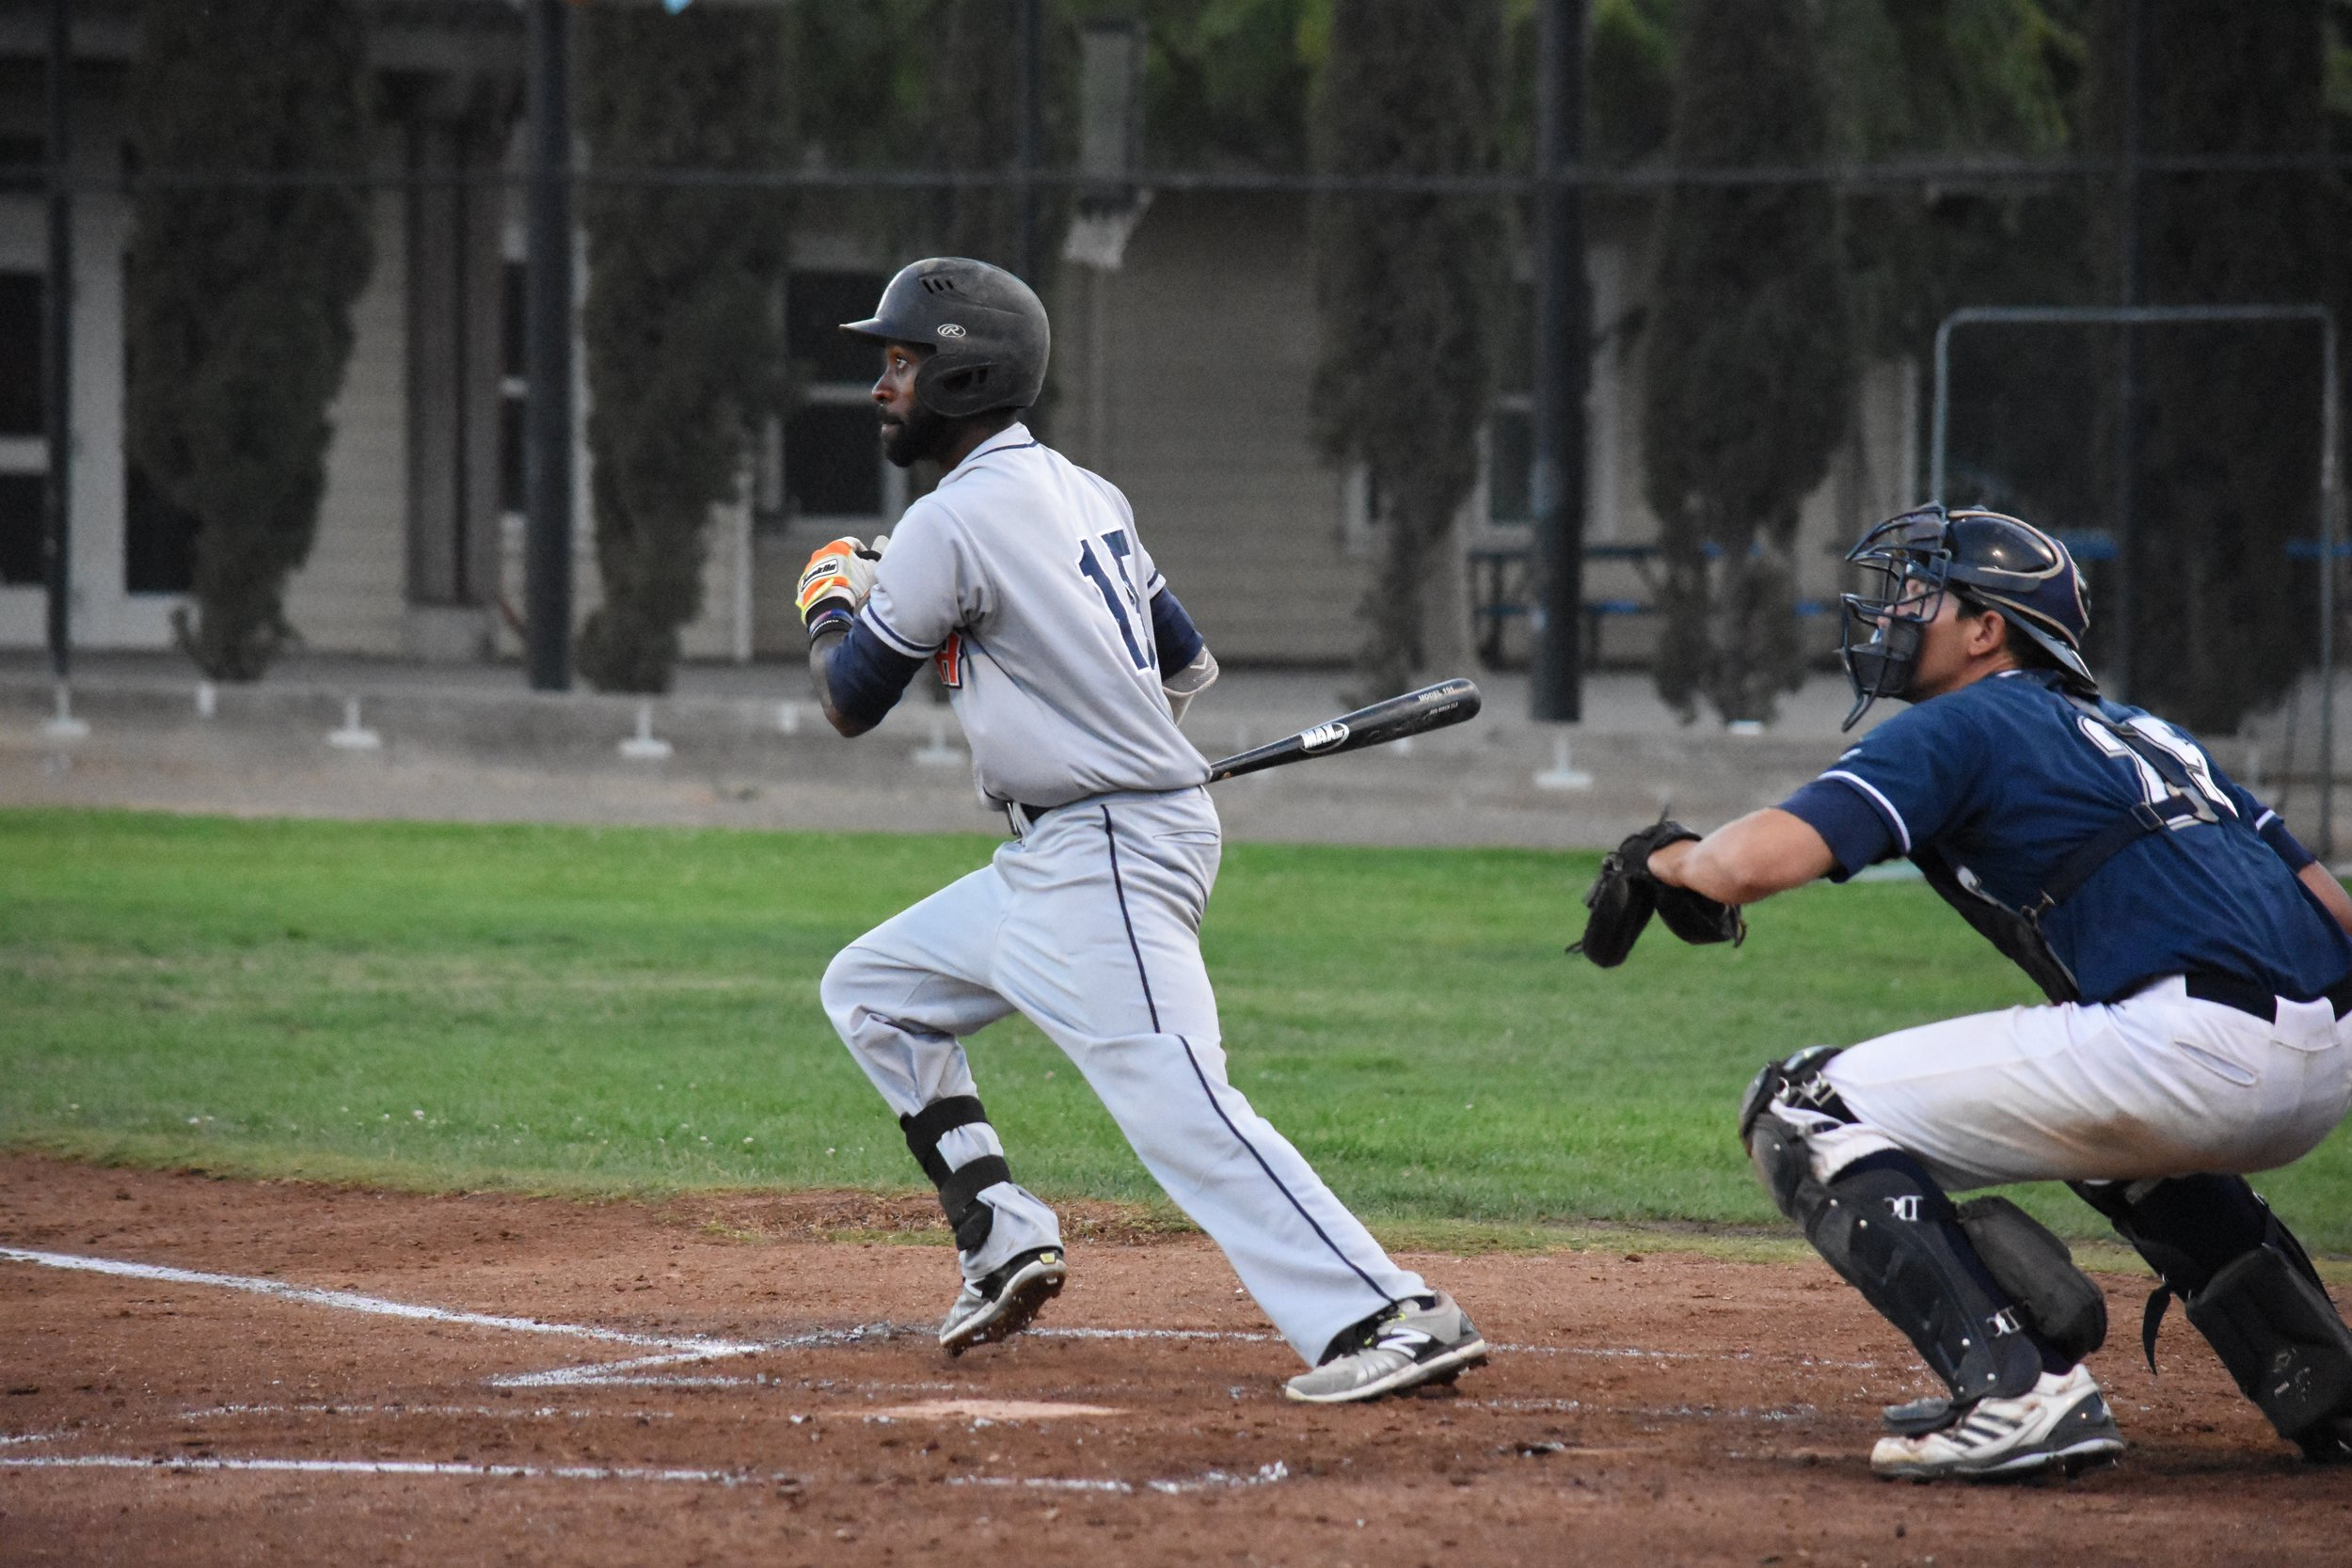 Derrick Fox drove in one of the Stompers' two runs in Thursday's 12-2 loss to the San Rafael Pacifics at Albert Park. (James W. Toy III / Sonoma Stompers)